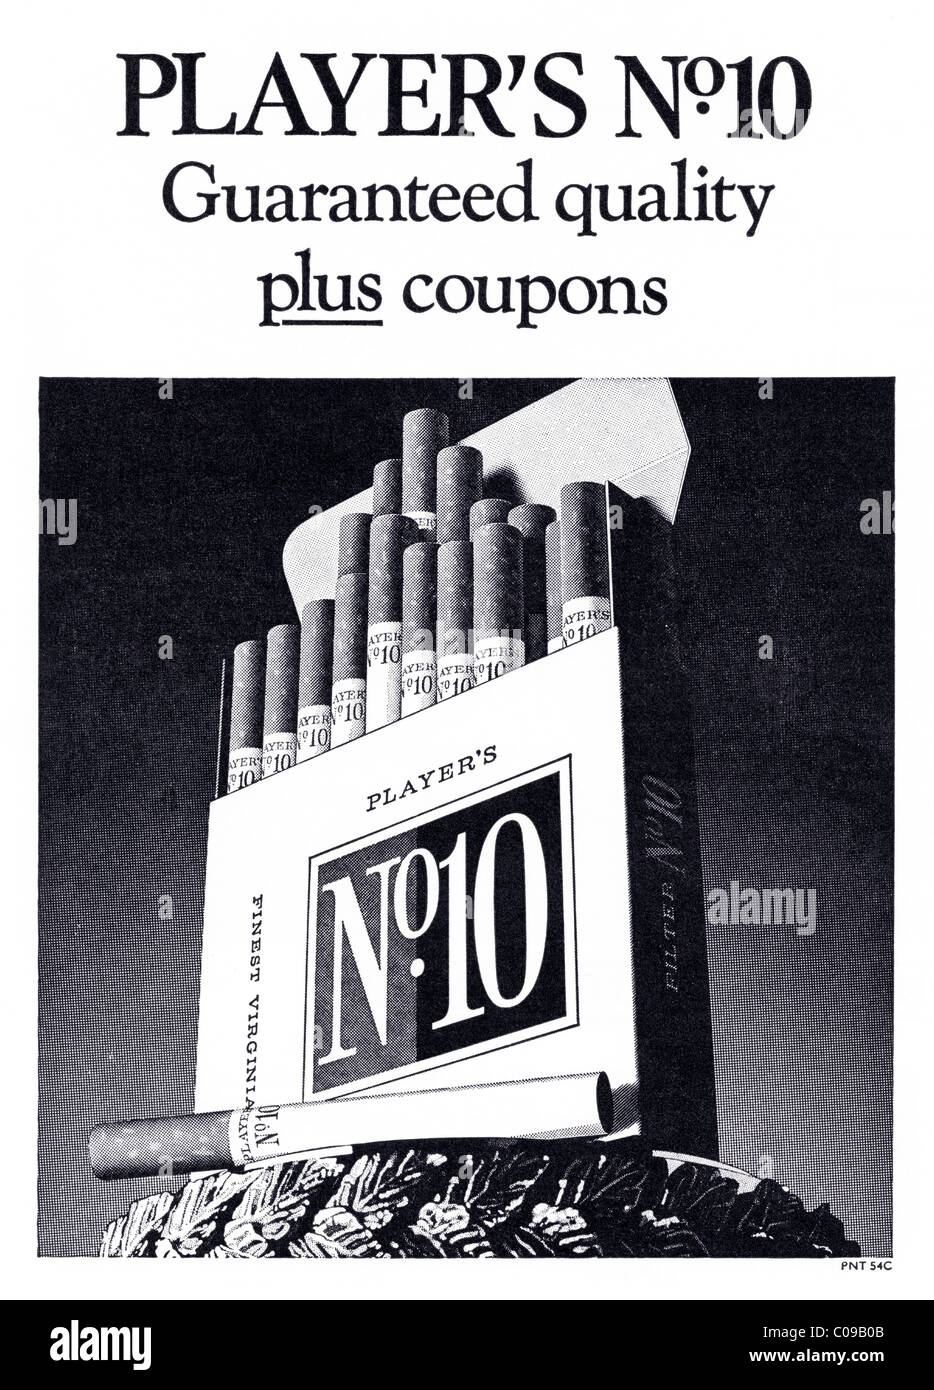 Original 1970s full page advertisement in football programme for PLAYERS No10 filter tipped cigarettes - Stock Image